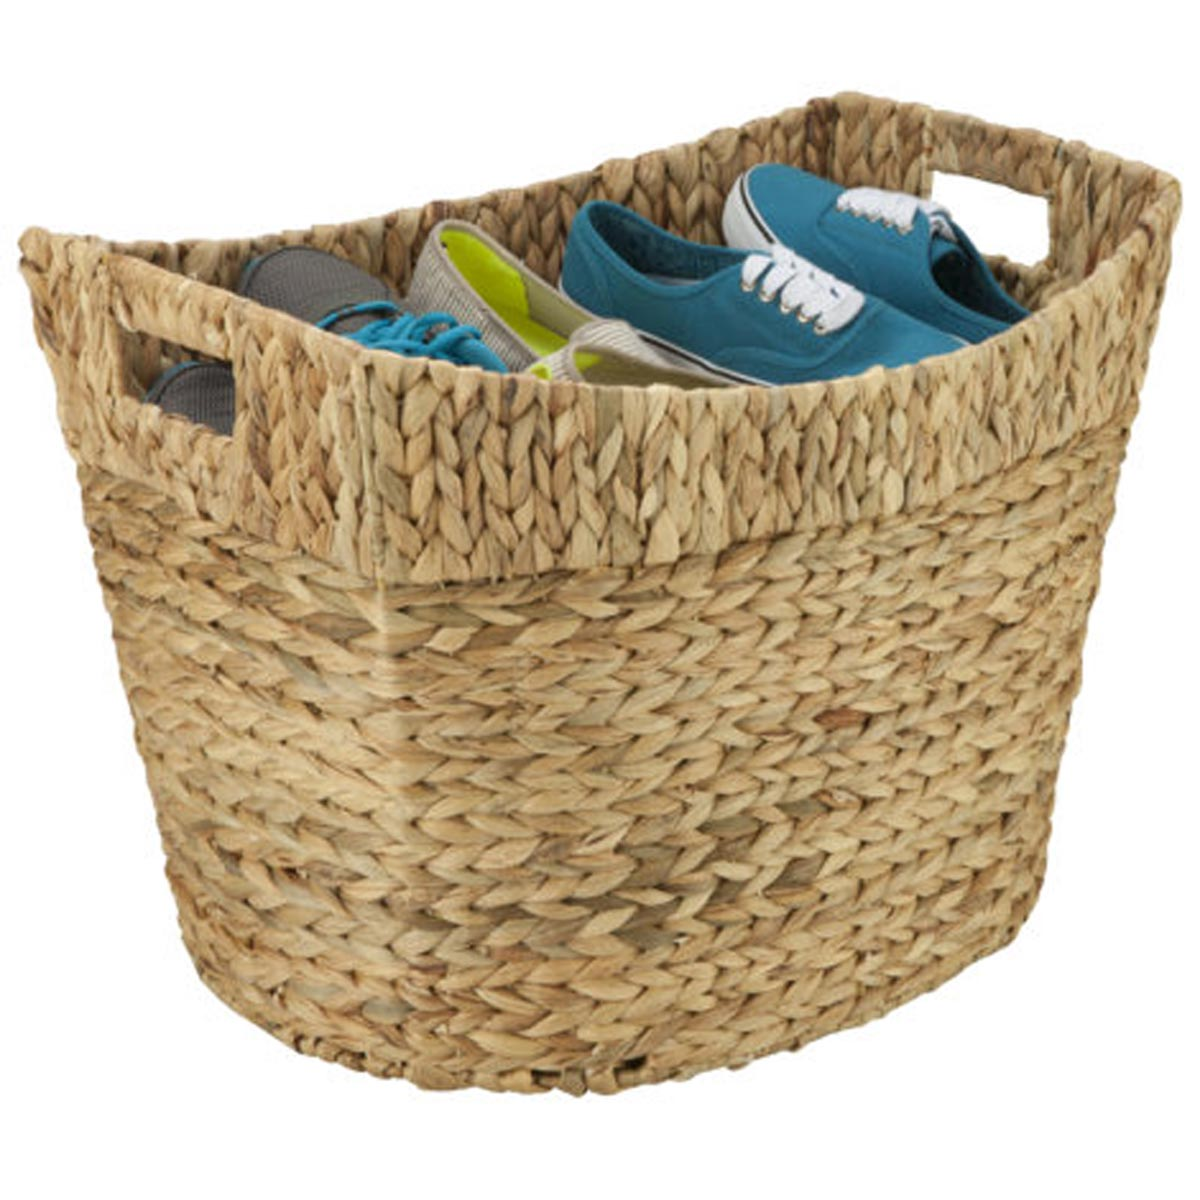 22.25 in. x 15.5 in. x 16.25 in. Tall Natural Hyacinth Storage Basket, Large